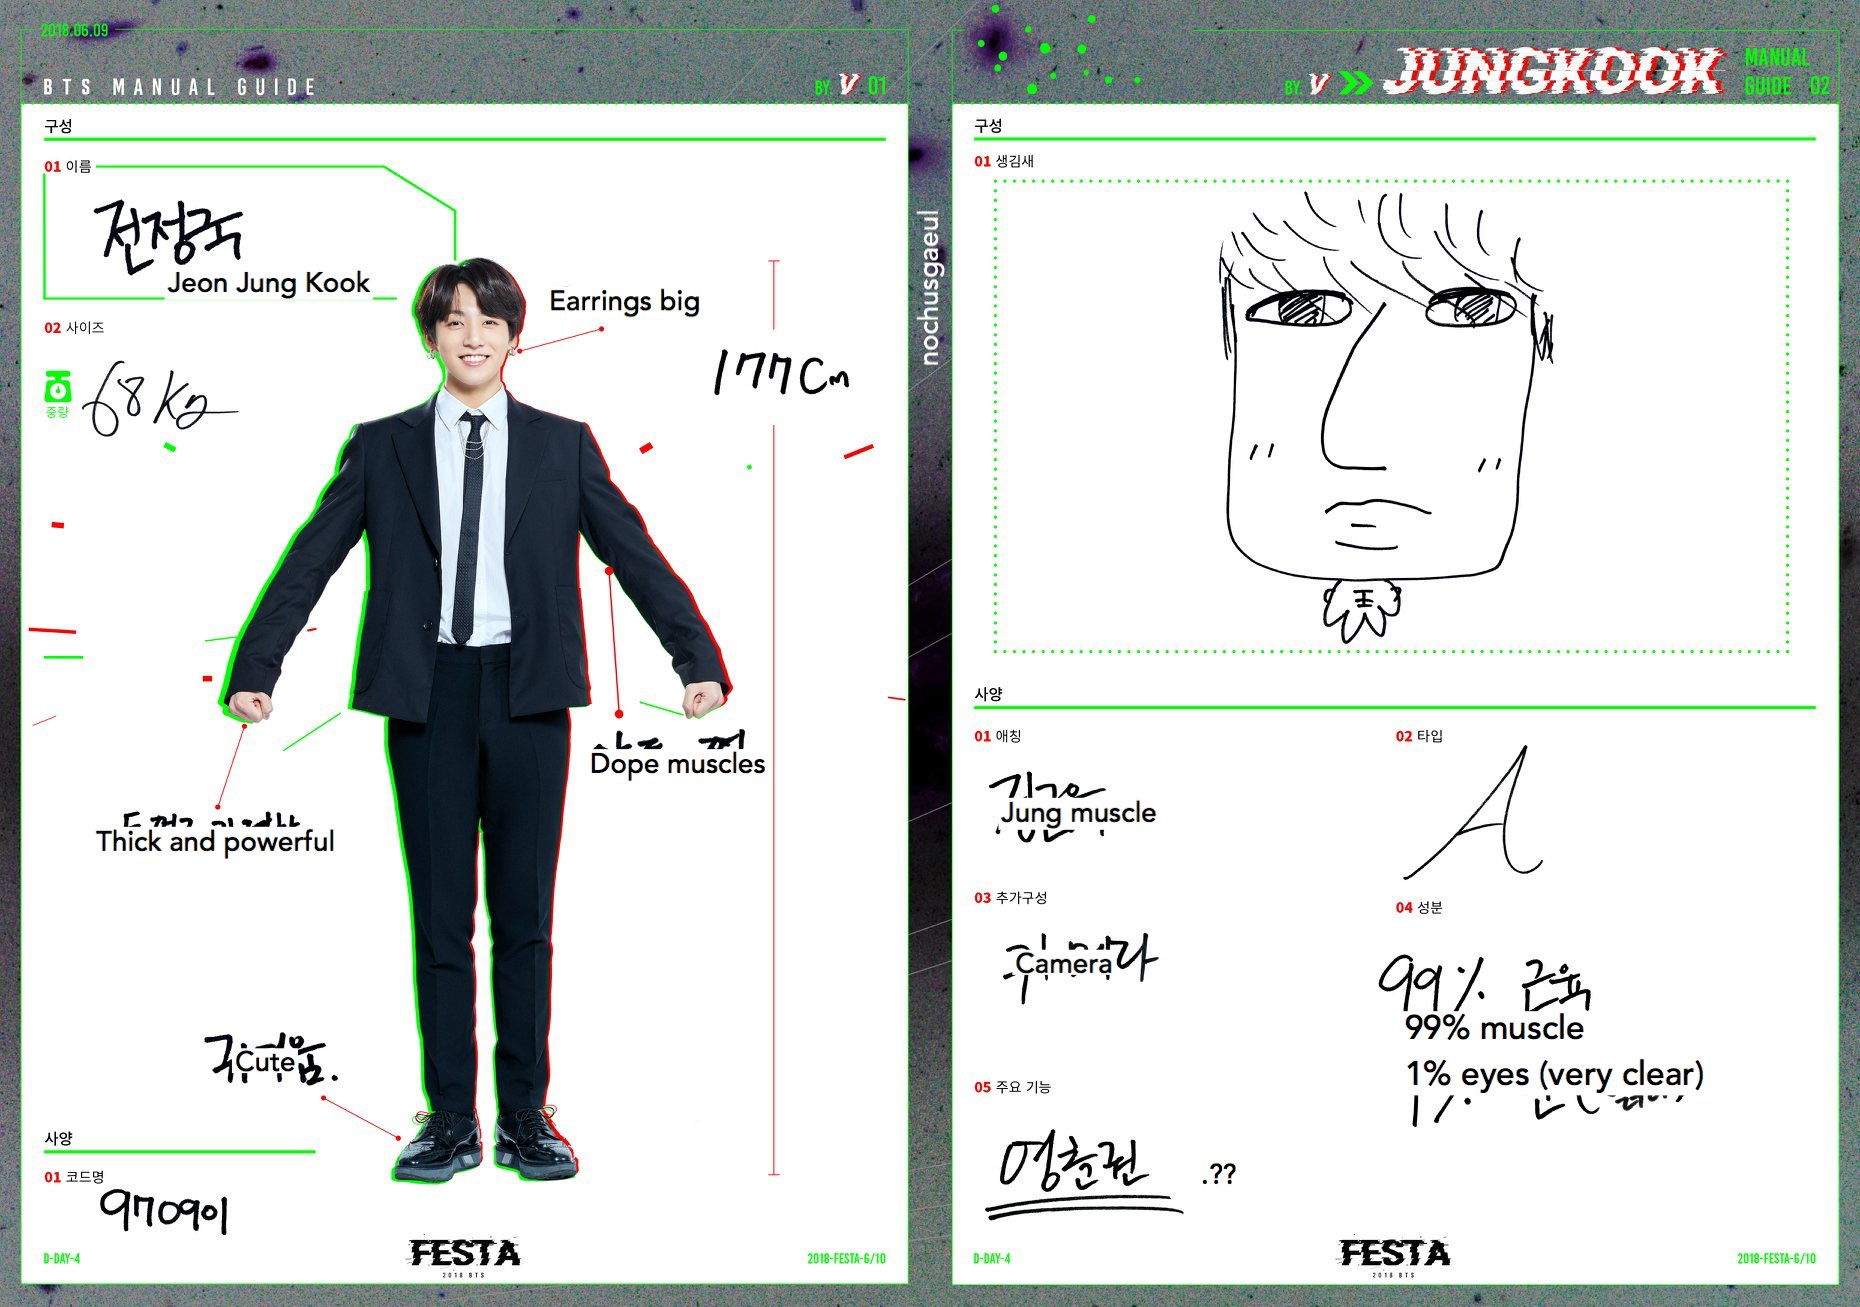 2qk1 dfmwva1x0aaauy7 - [Picture] 2018 BTS FESTA : BTS MANUAL GUIDE [180809]